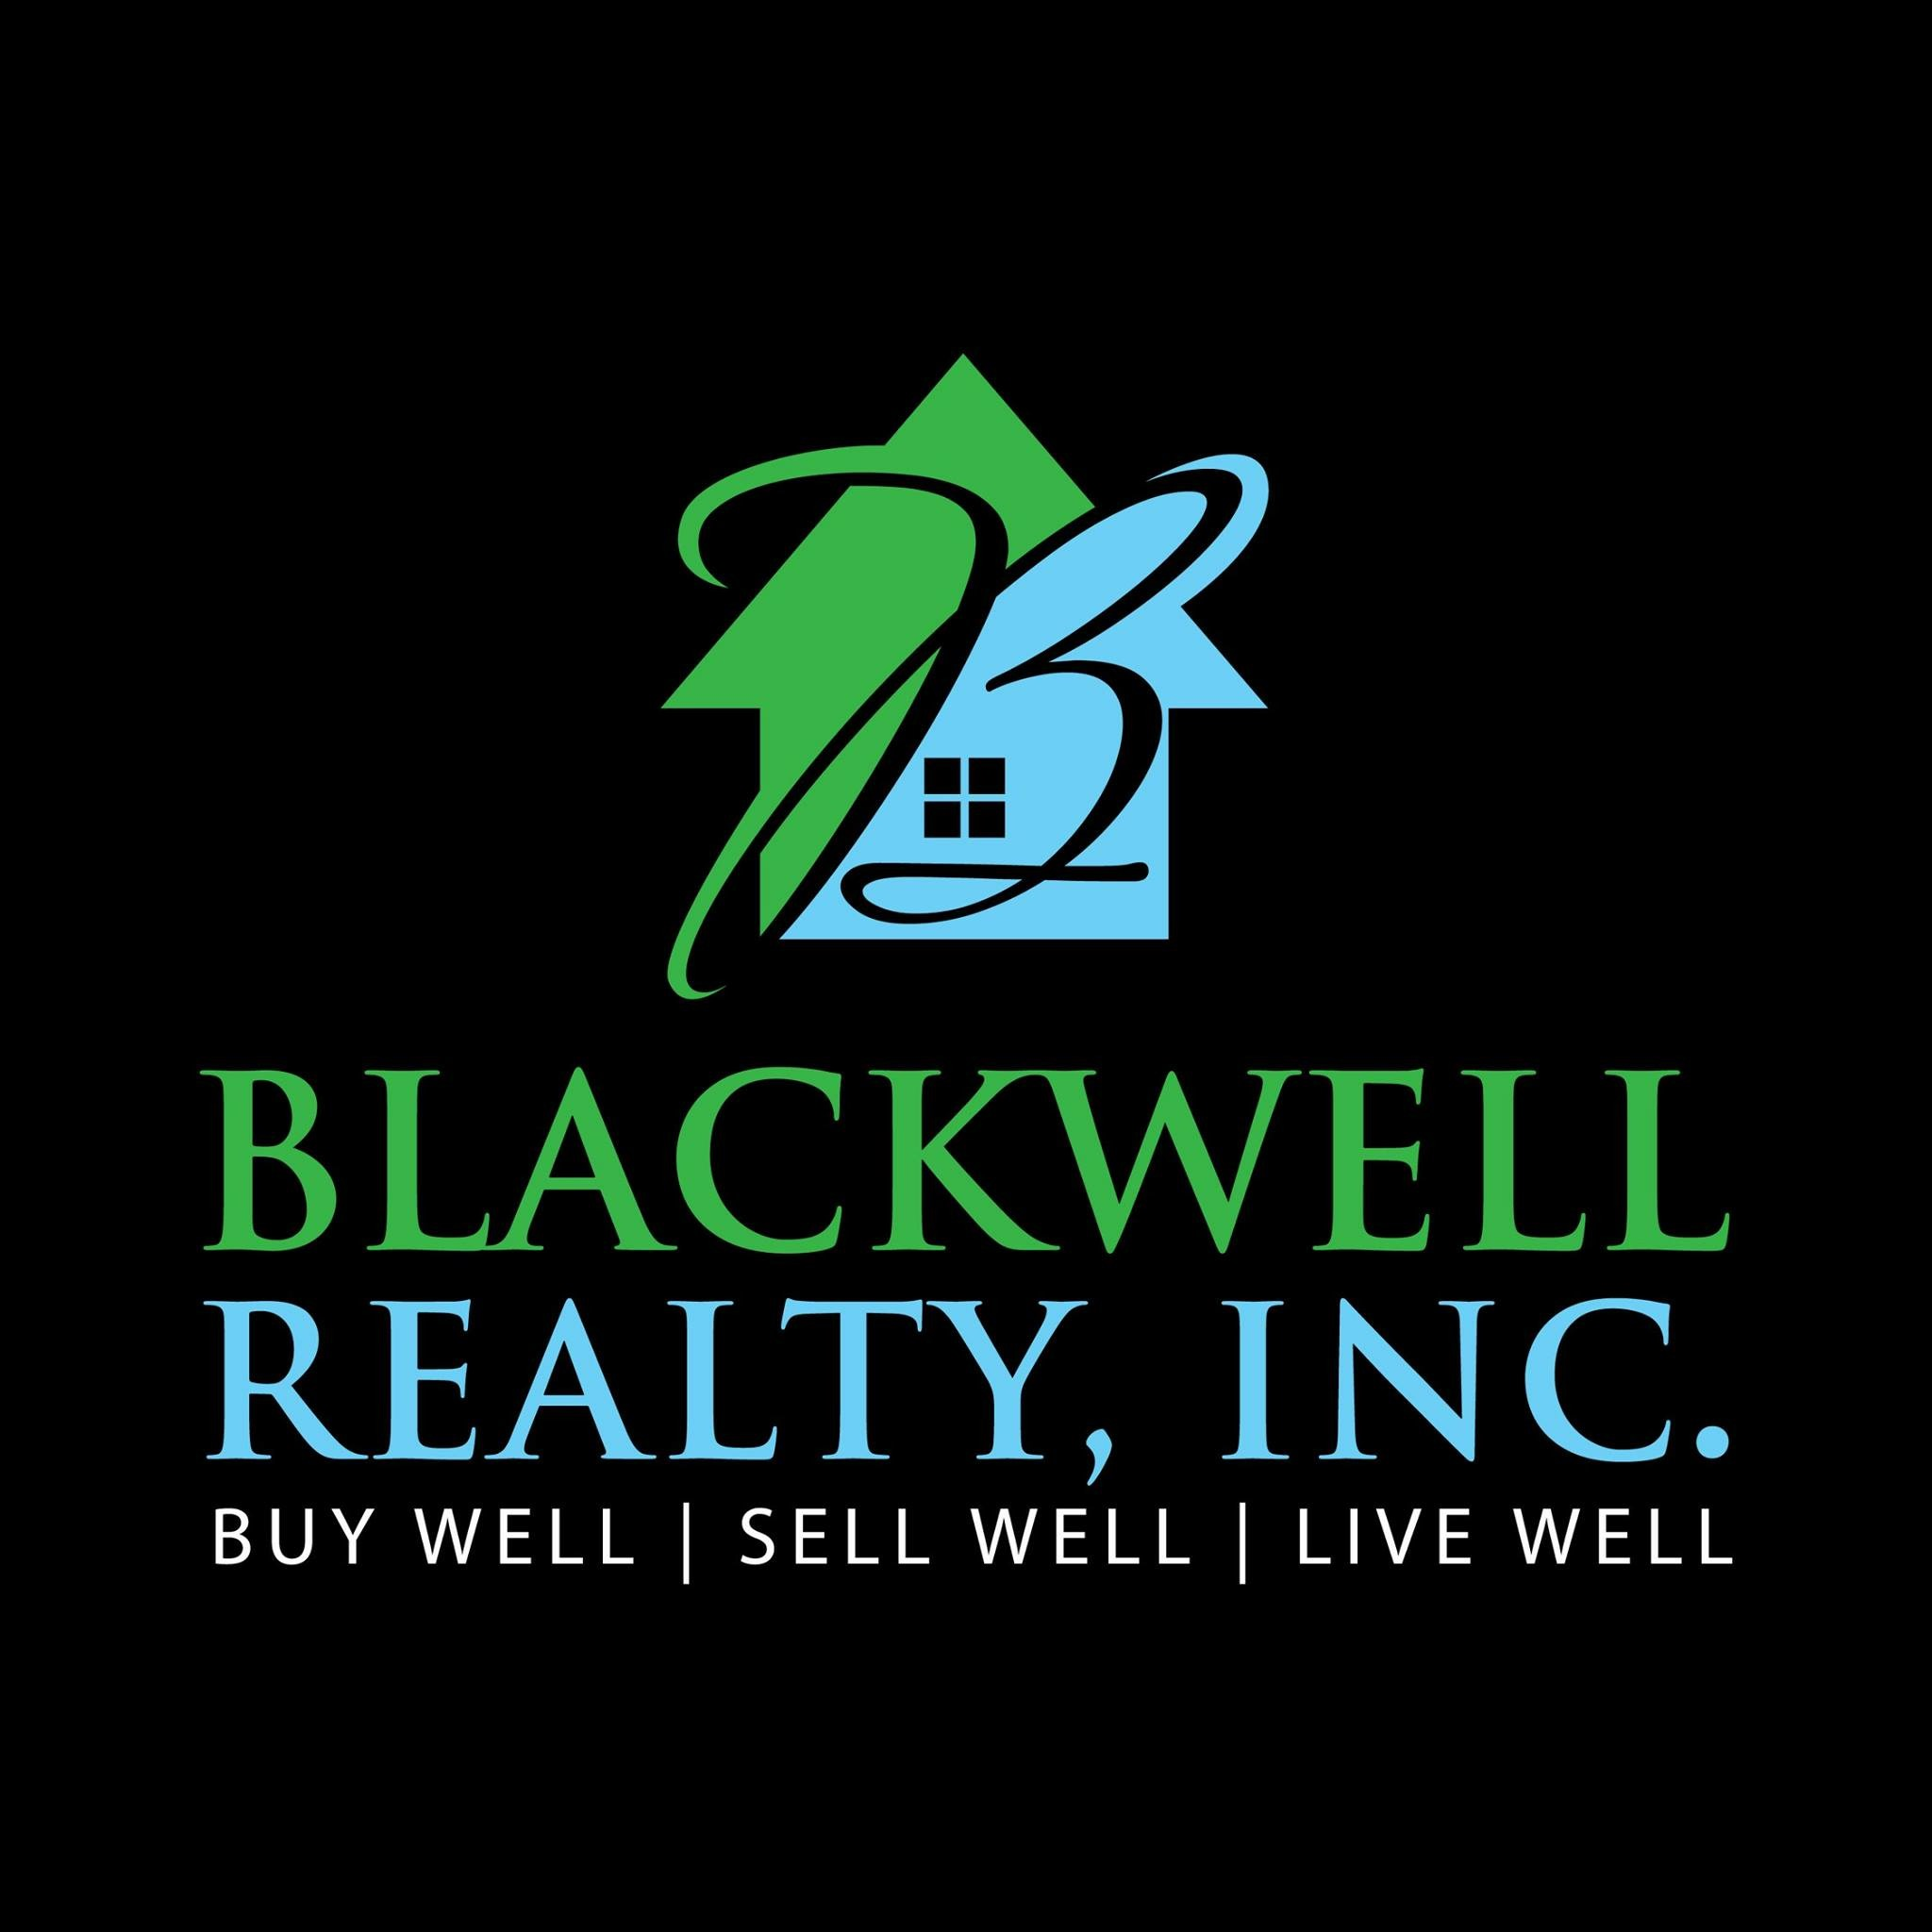 Blackwell Realty, Inc.